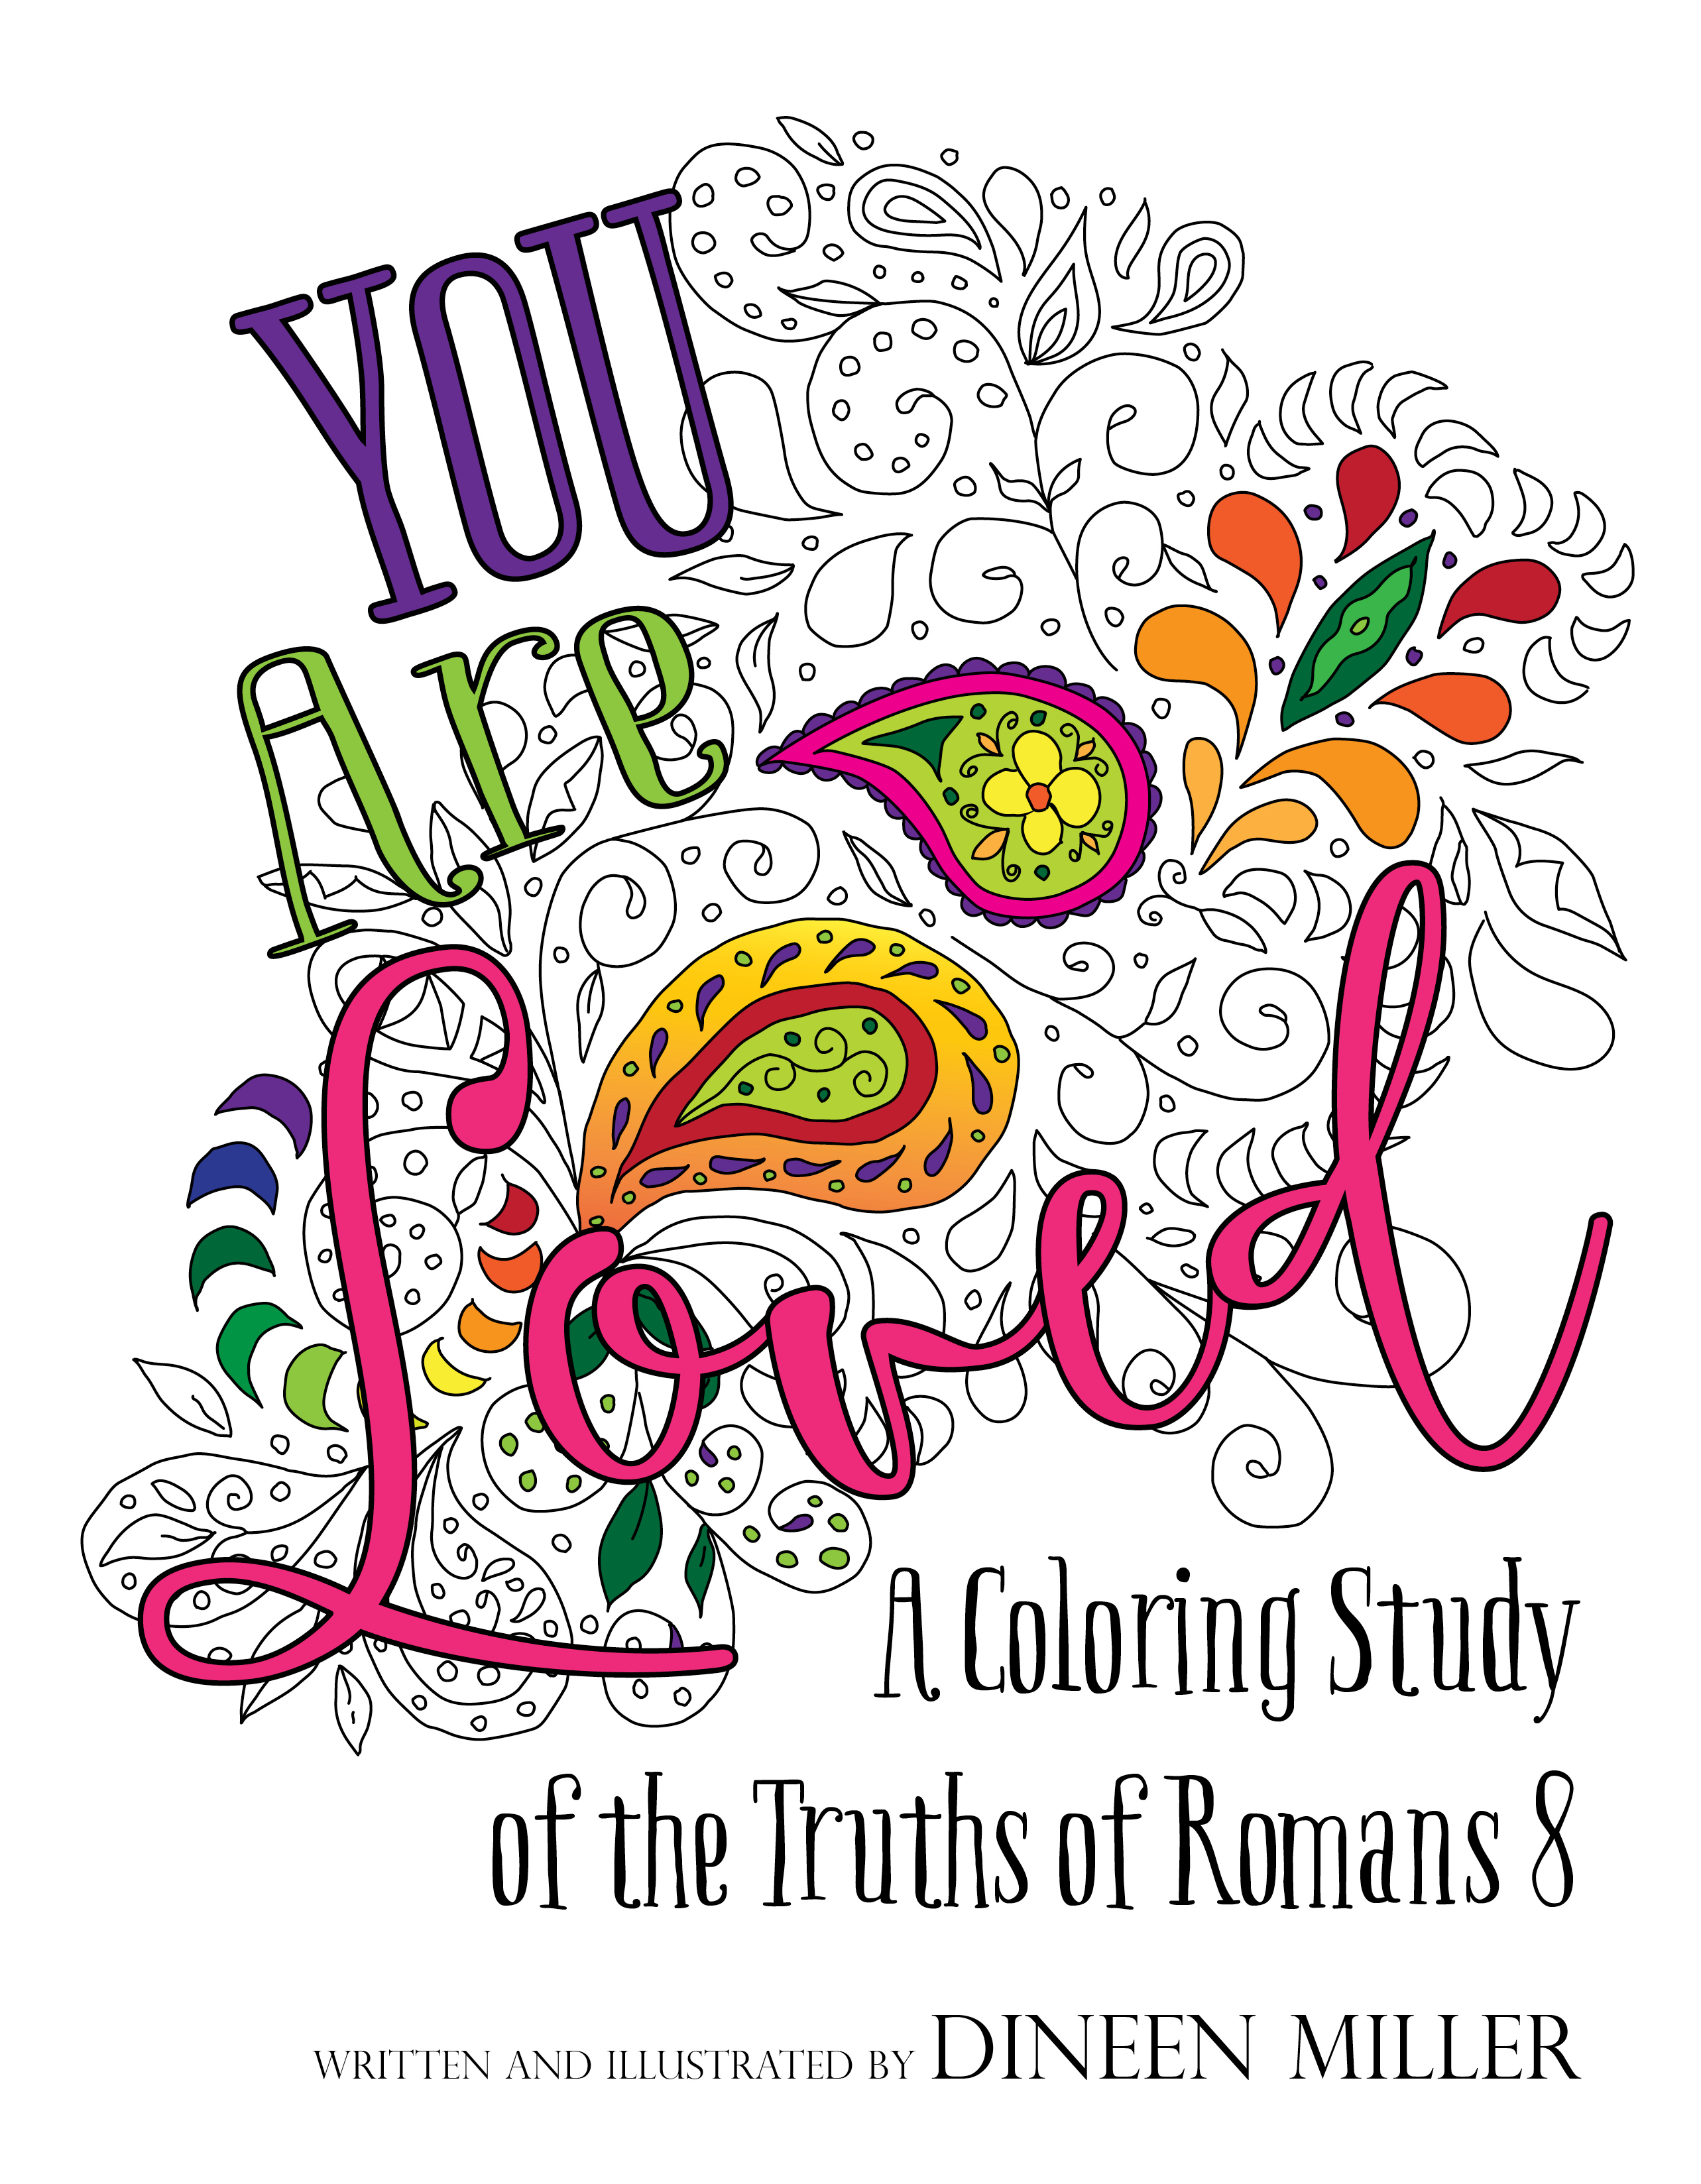 You Are Loved: A Coloring Study of the Truths of Romans 8